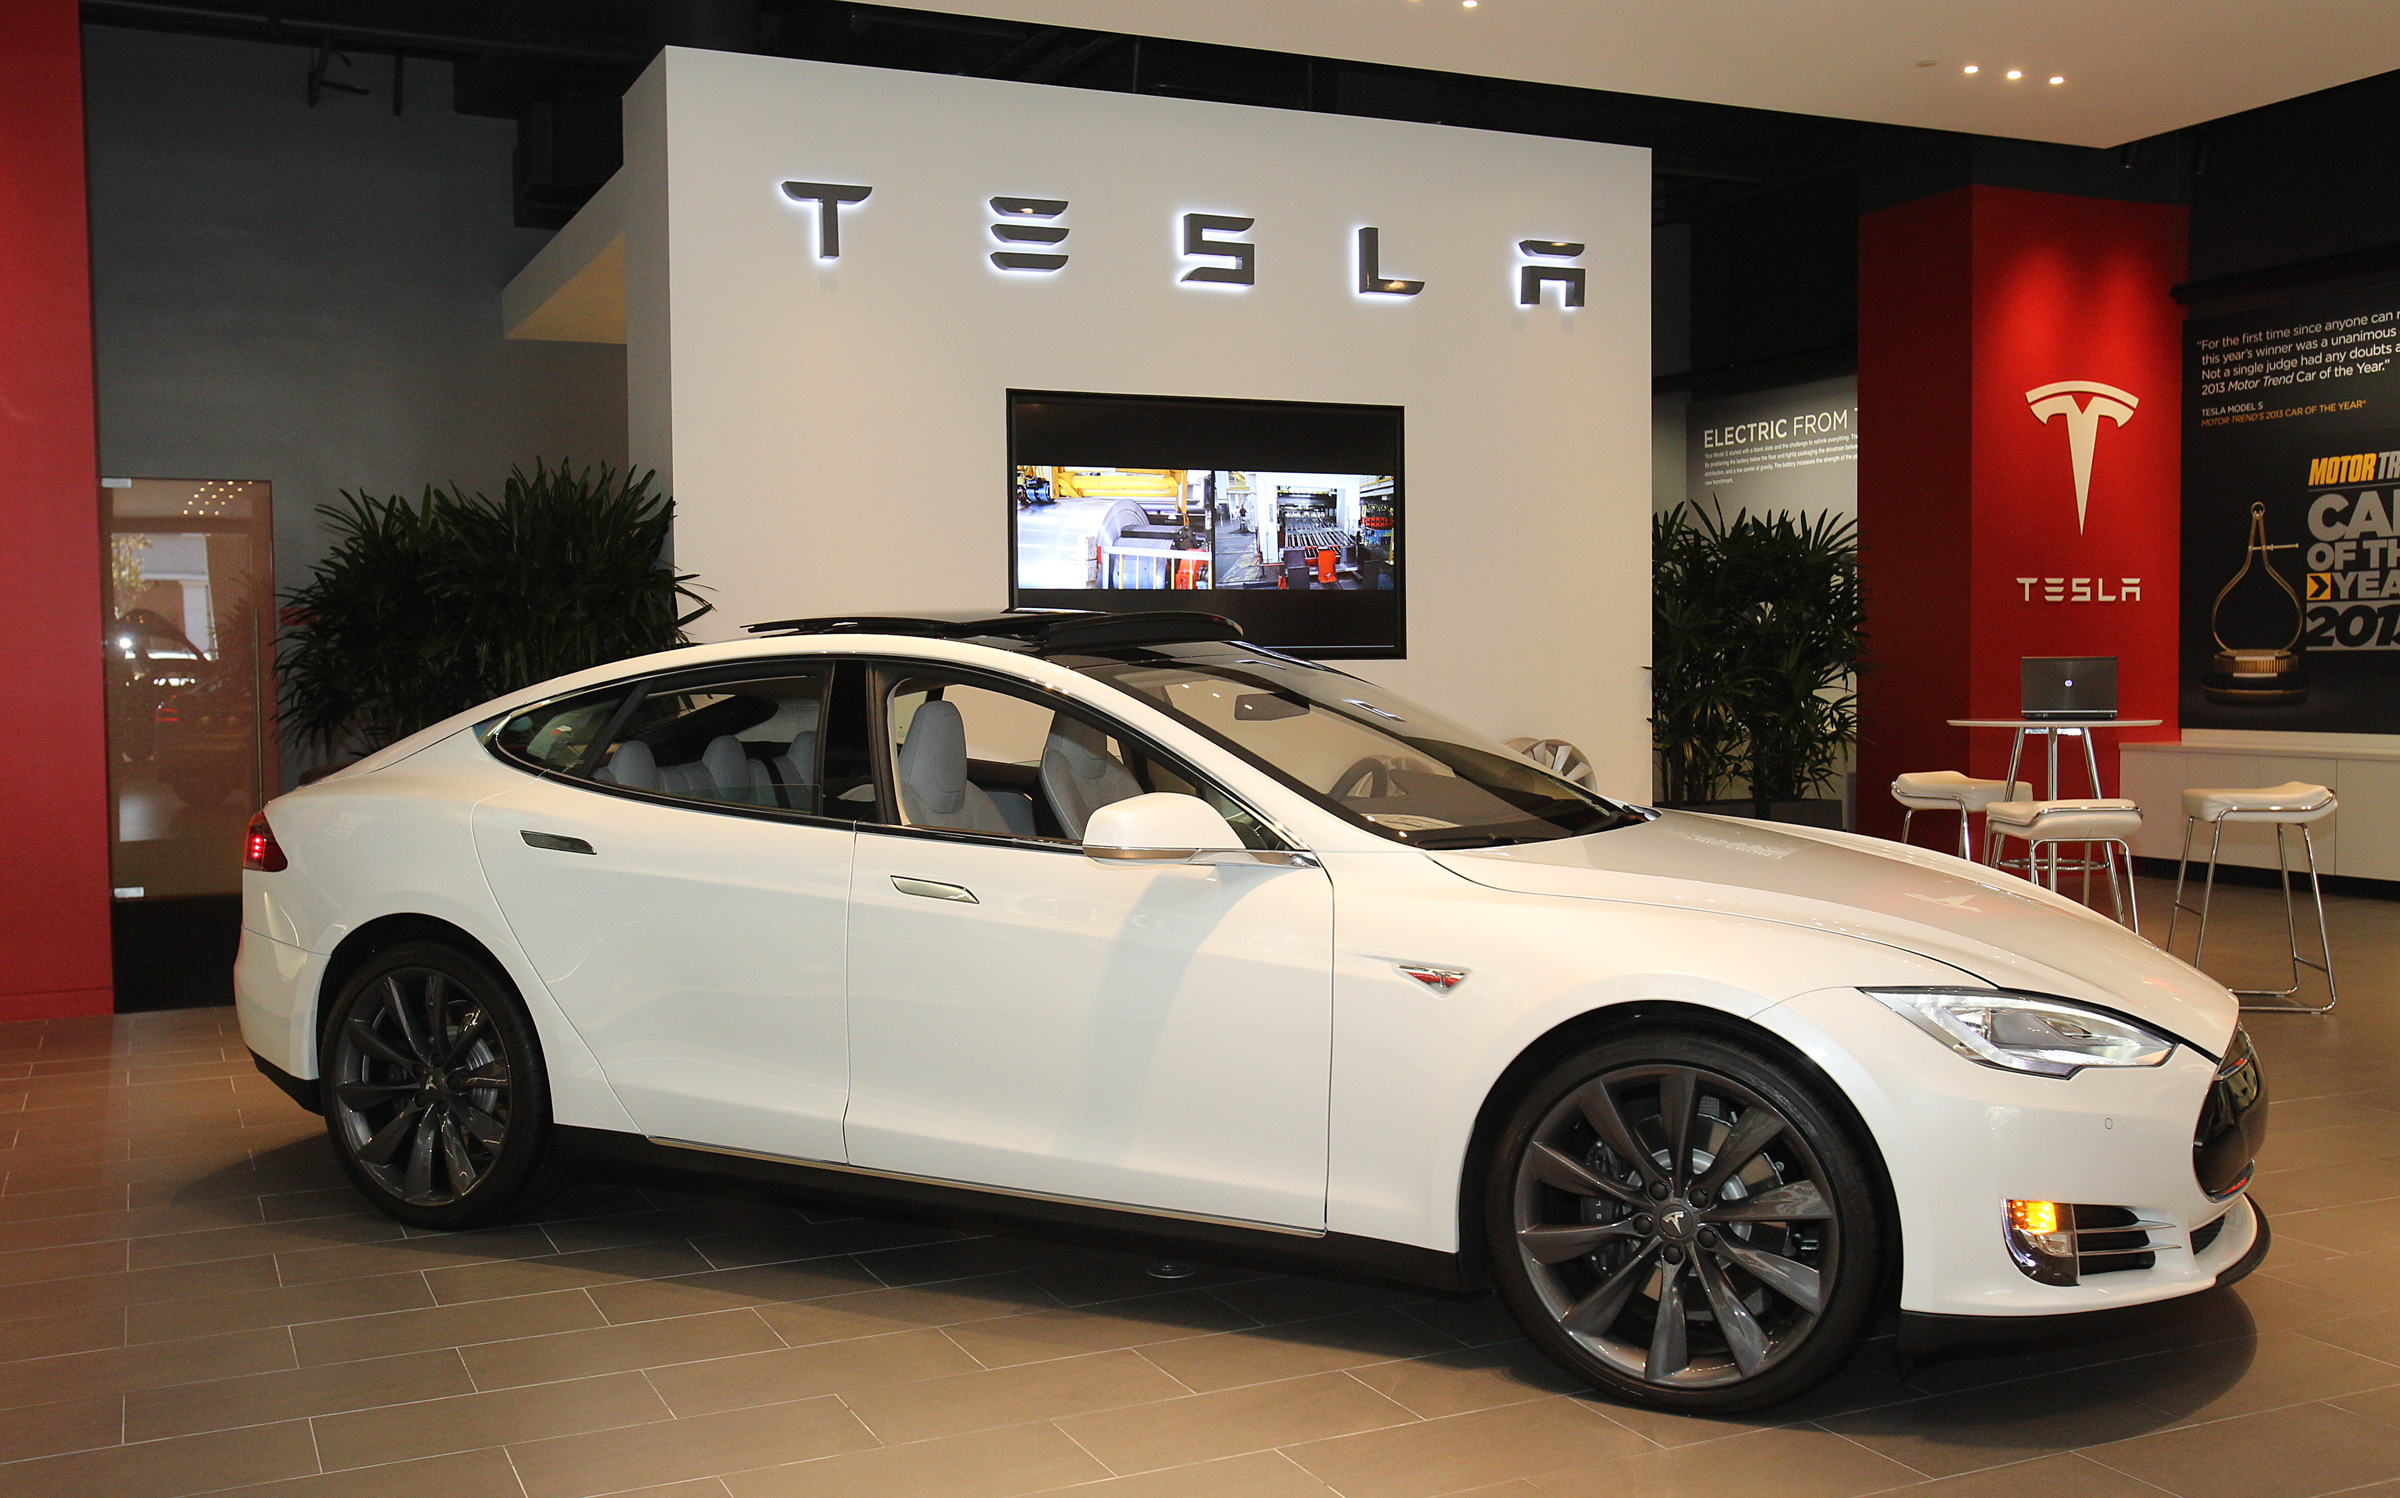 Image of Tesla's car. Photo credit: Jacqueline Ramseyer/SVCN/Augu